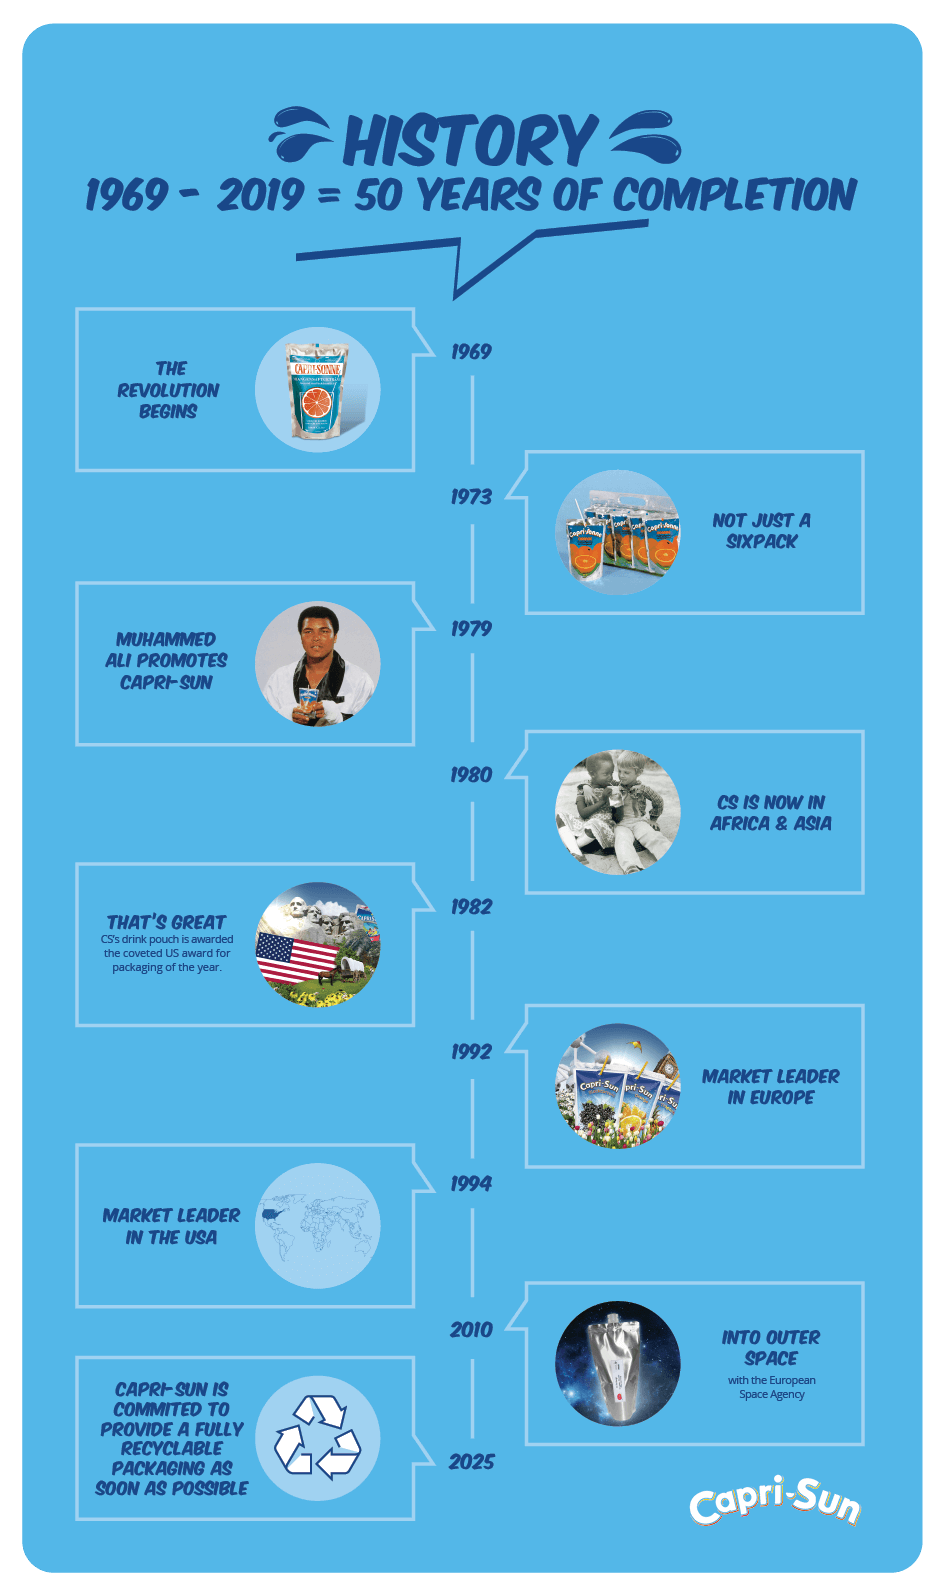 Overview of the Capri-Sun story.